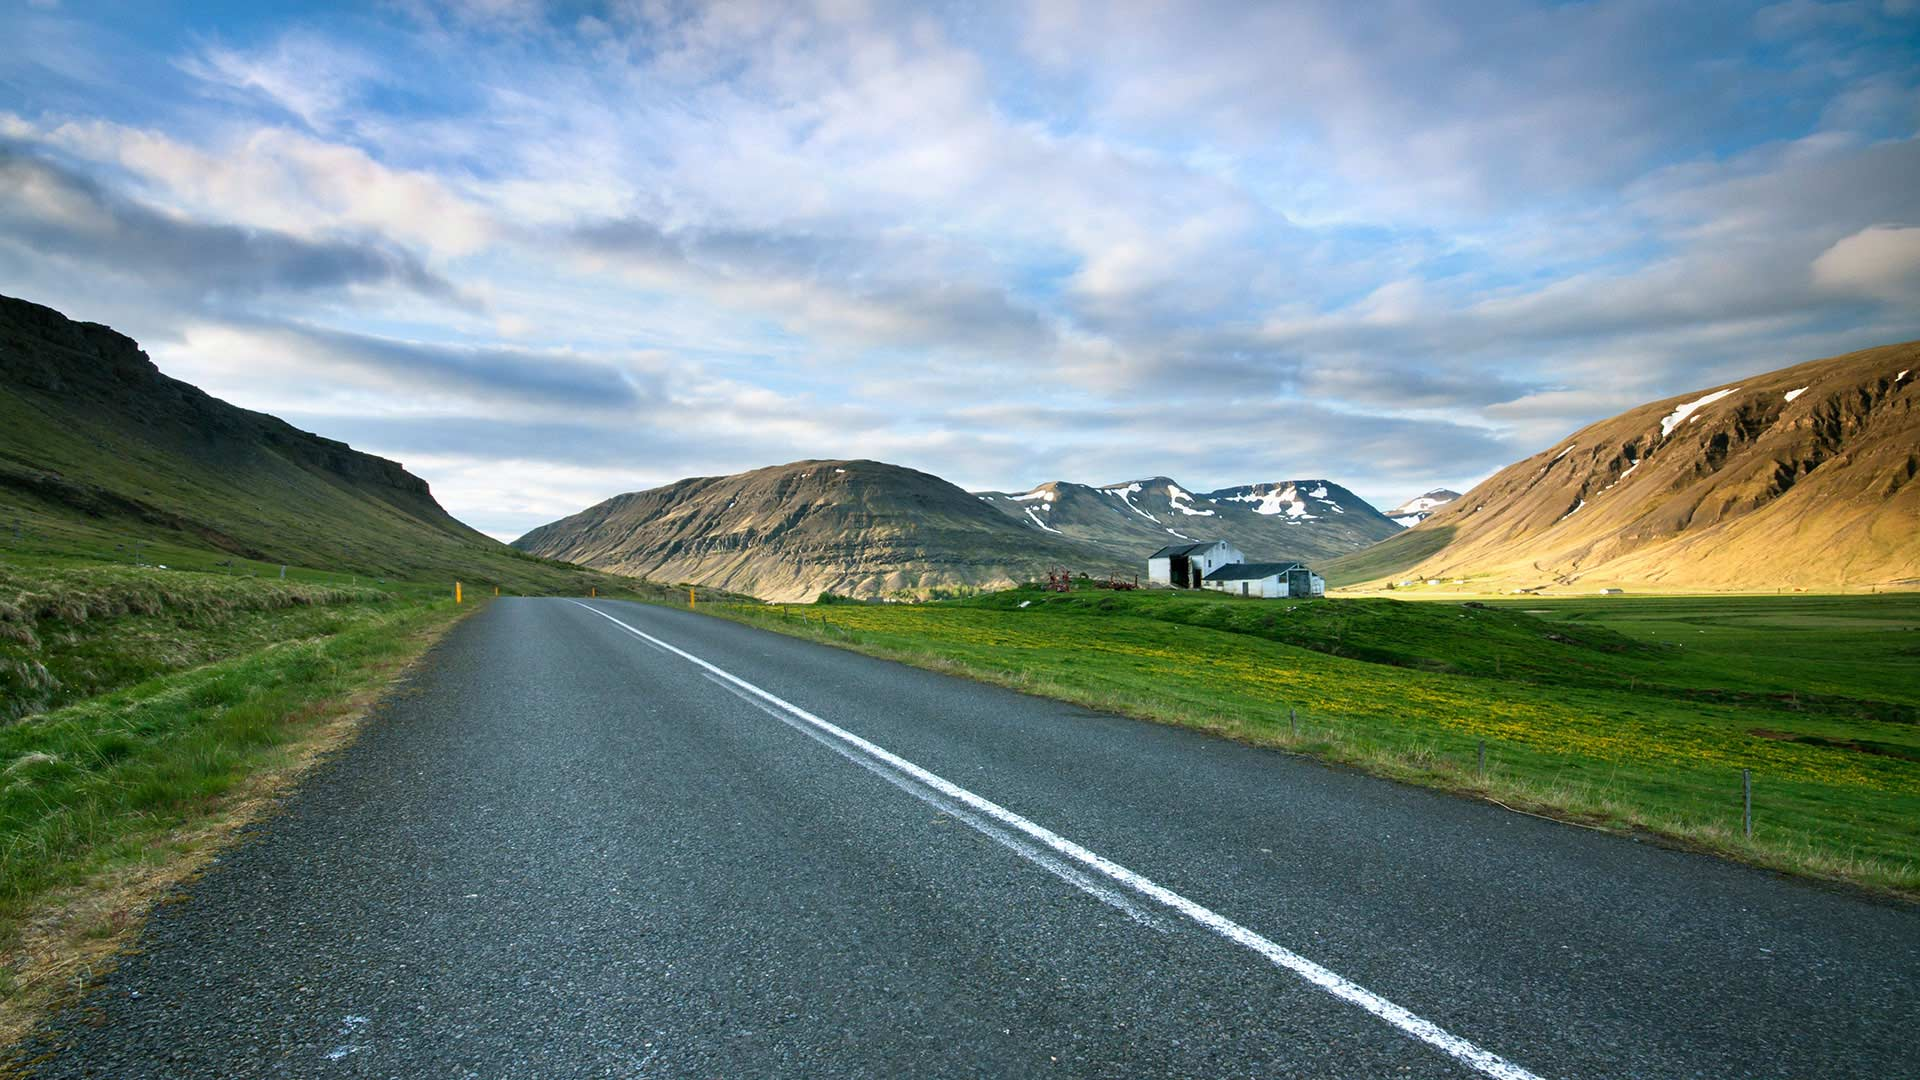 Iceland S Ring Road Wallpapers: Iceland's Ring Road Wallpapers (92 Wallpapers)